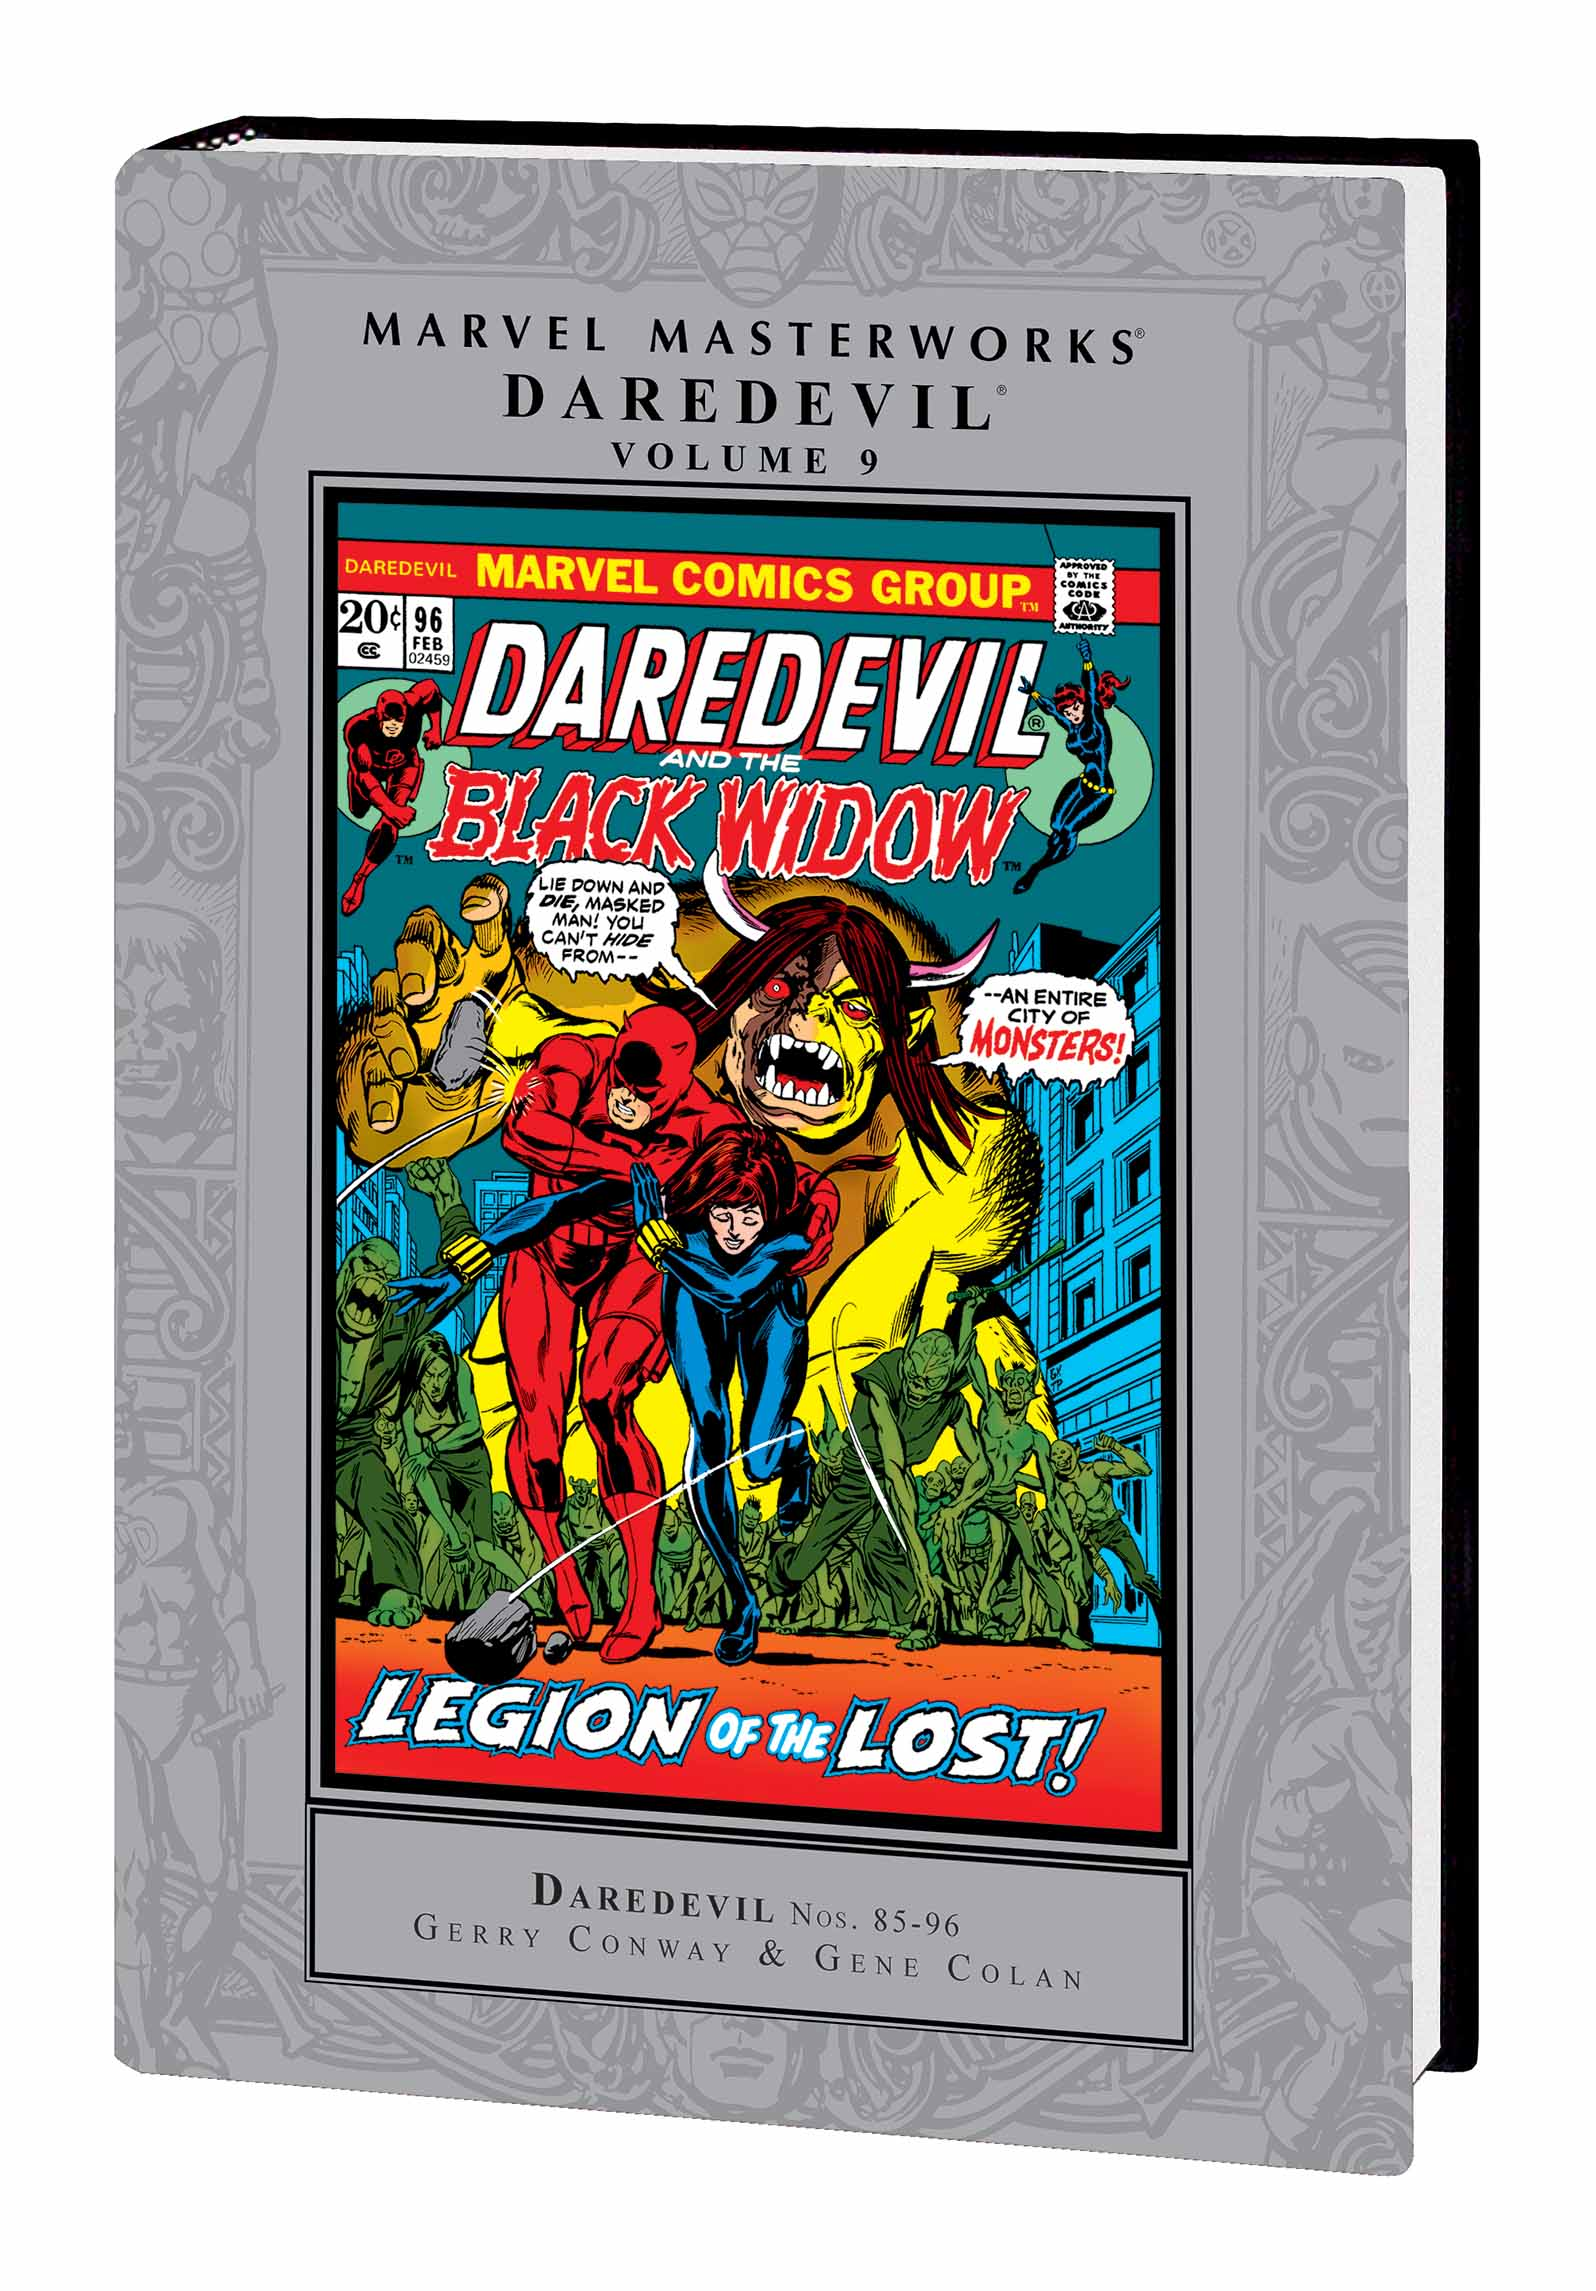 Marvel Masterworks: Daredevil Vol. 9 (Hardcover)